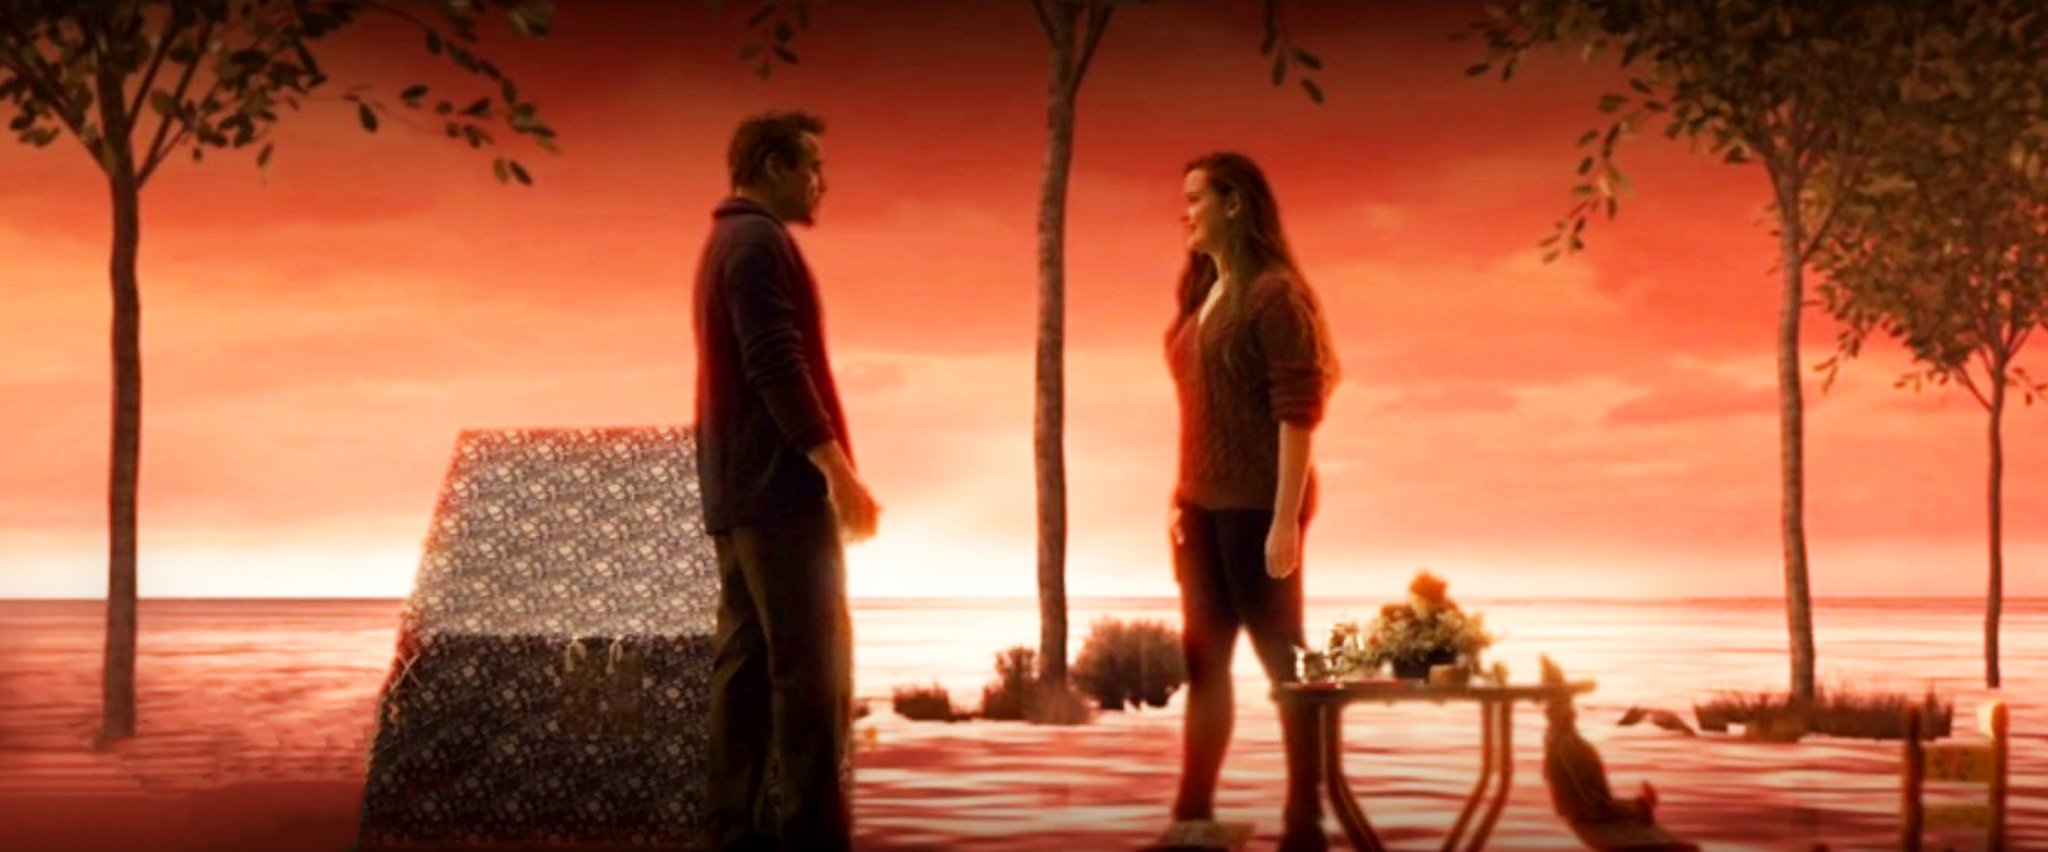 Photo of The Endgame Afterlife Scene of Robert Downey Jr. & Katherine Langford Finally Revealed